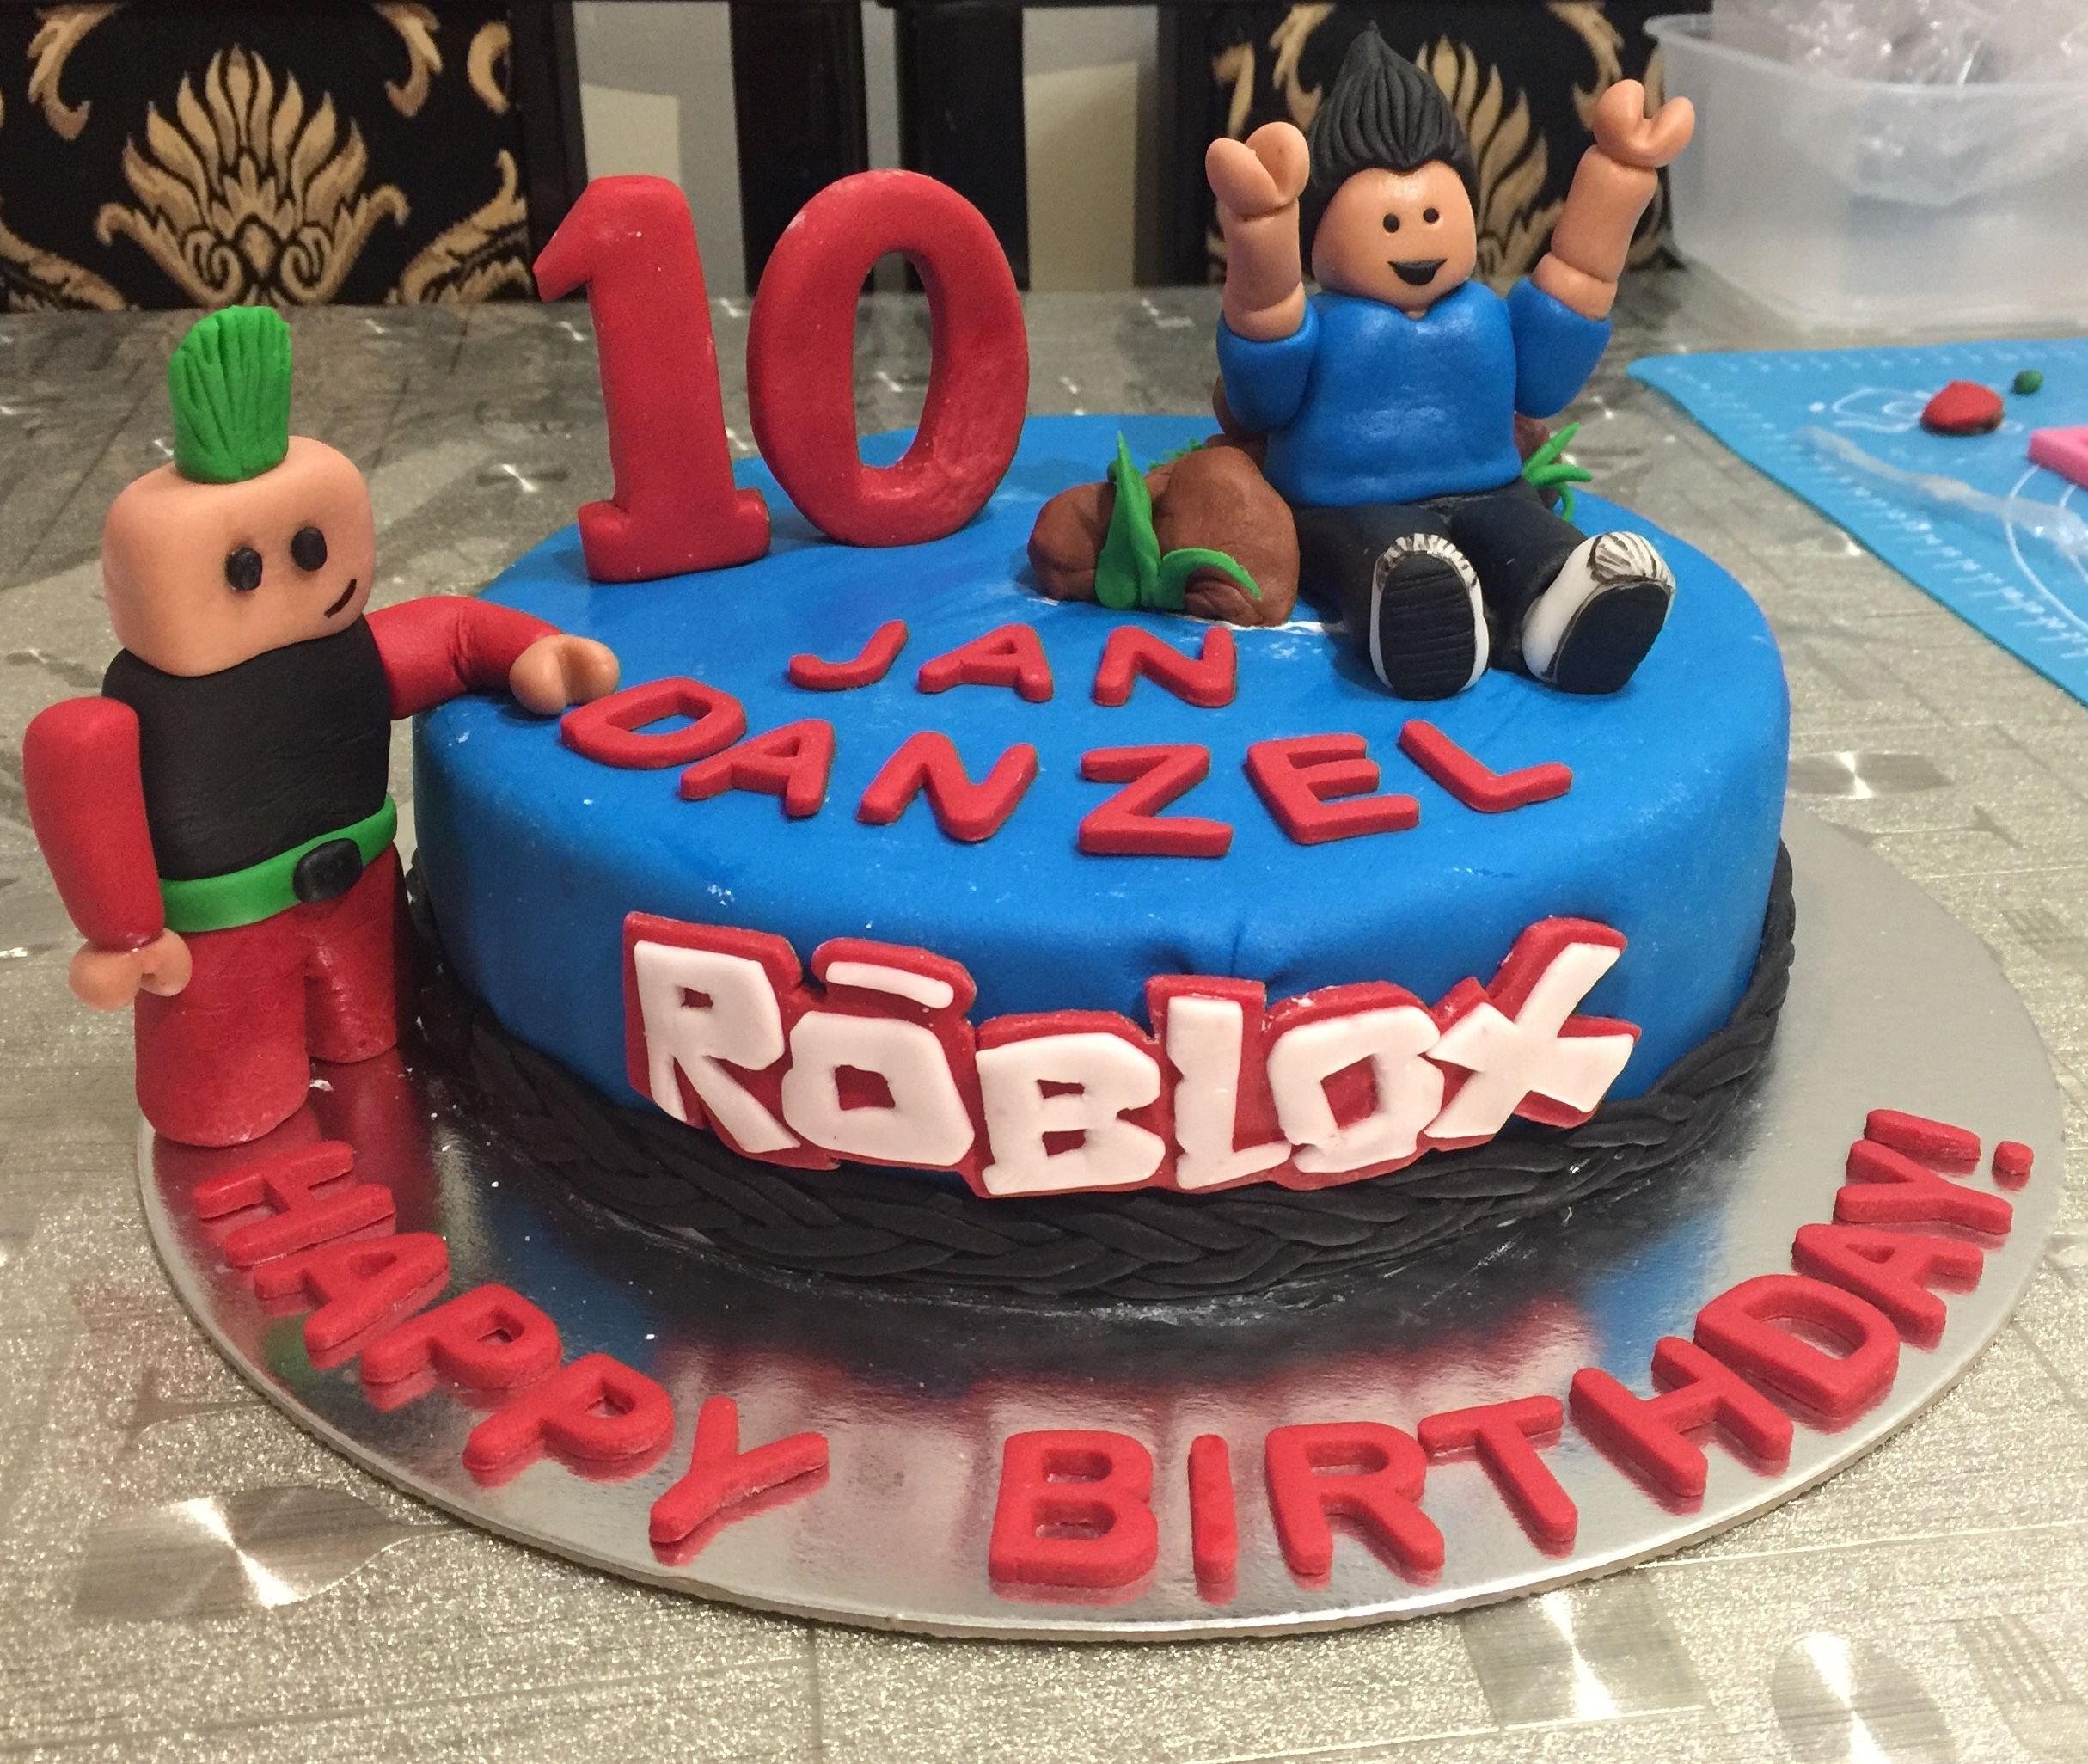 Roblox Cake For Boy Roblox Themed Cake Roblox Birthday Cake Roblox Cake Cake